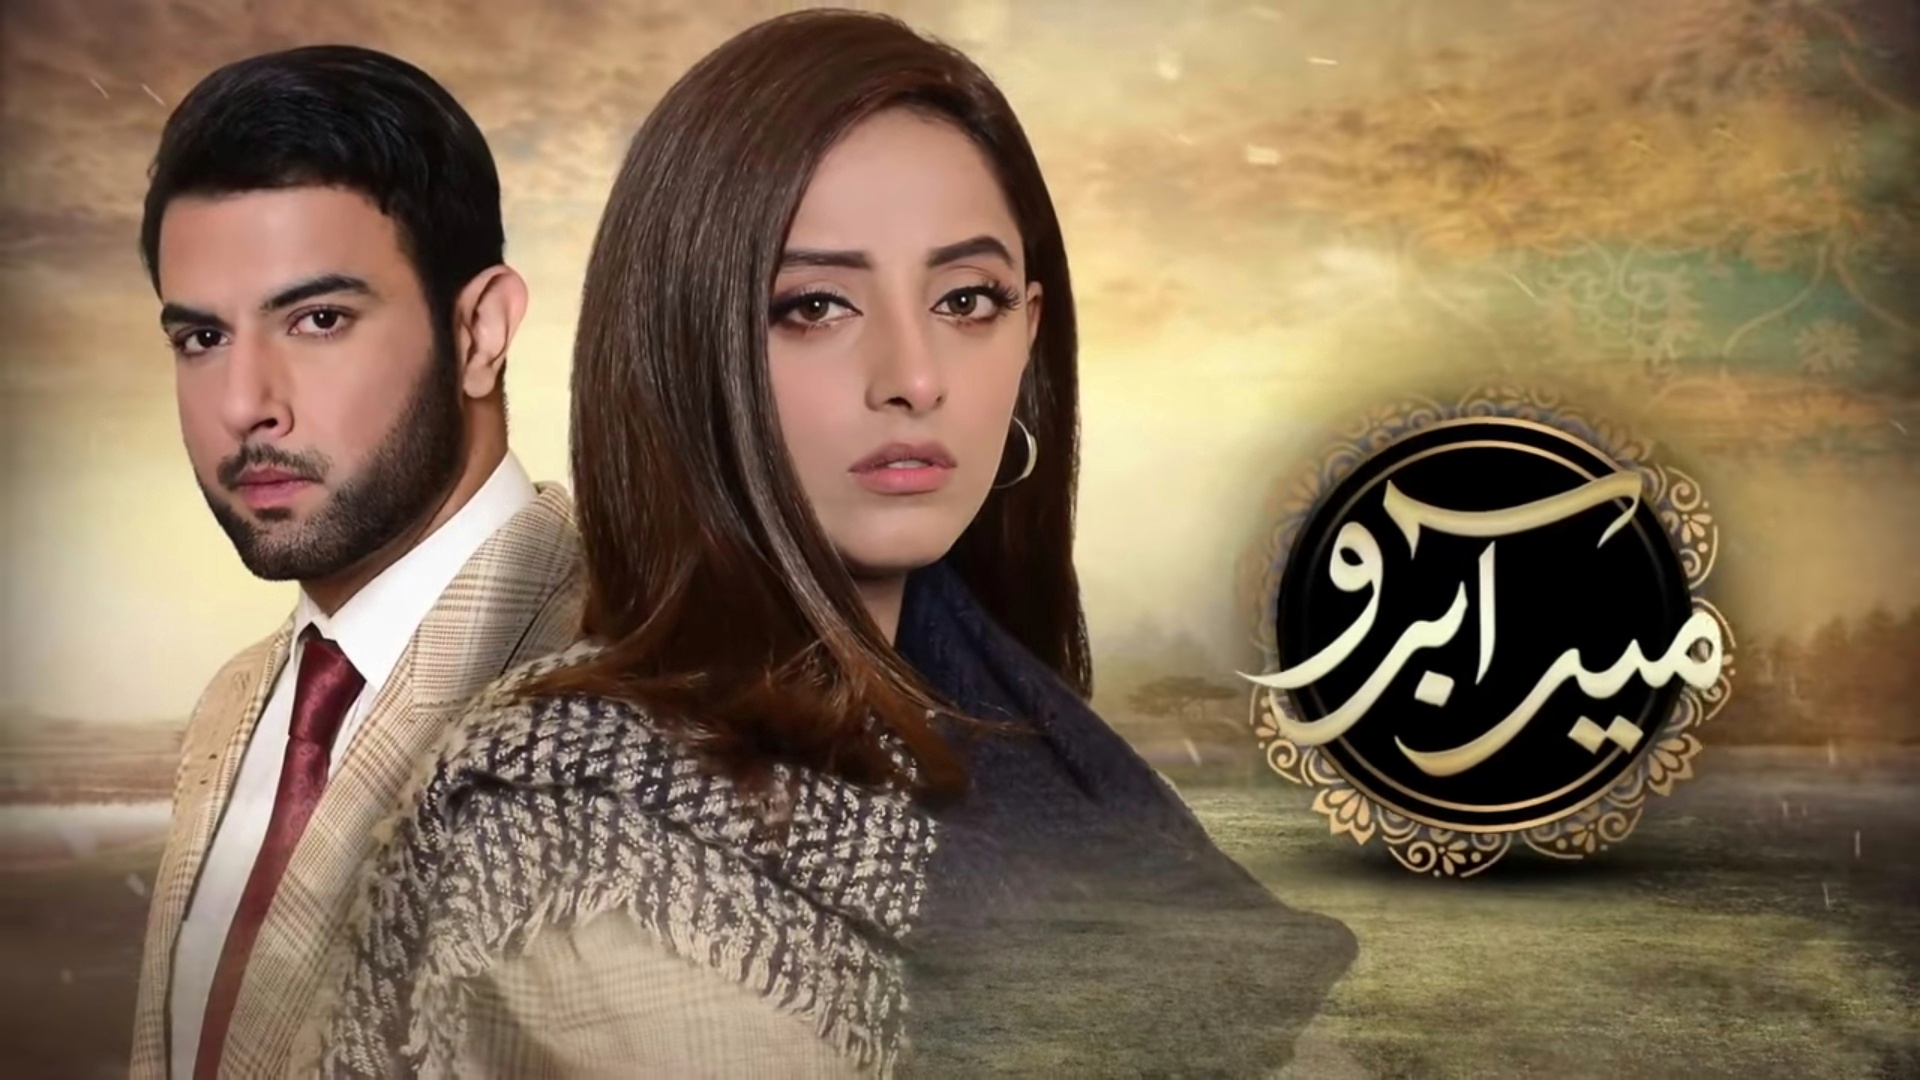 Meer Abru Episode 1 to 4 - An Overview